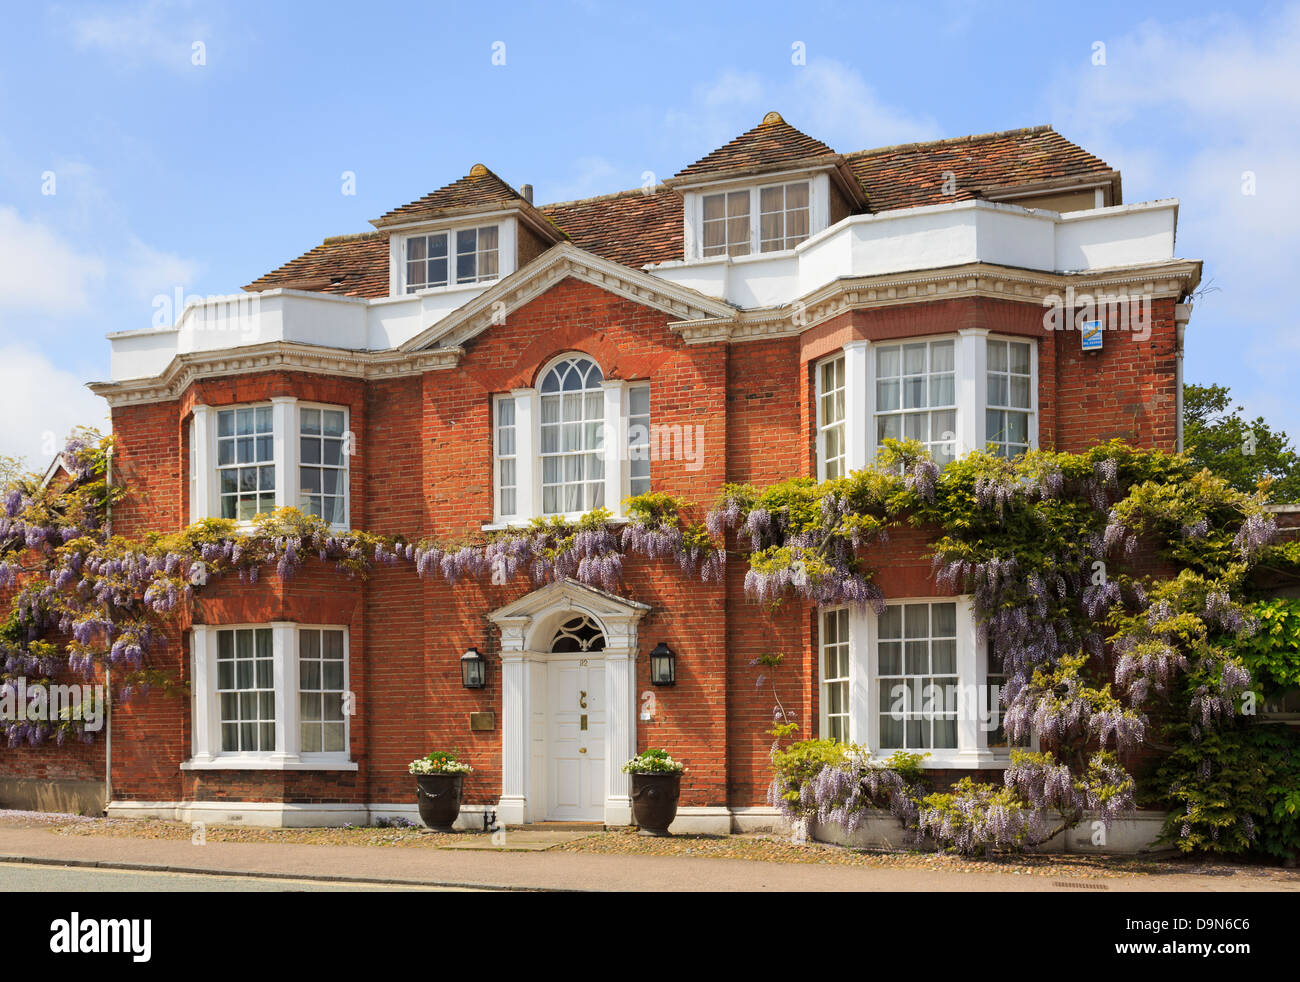 Wisteria floribunda growing around a red-brick Georgian detached house front in picturesque village in summer. Lavenham - Stock Image